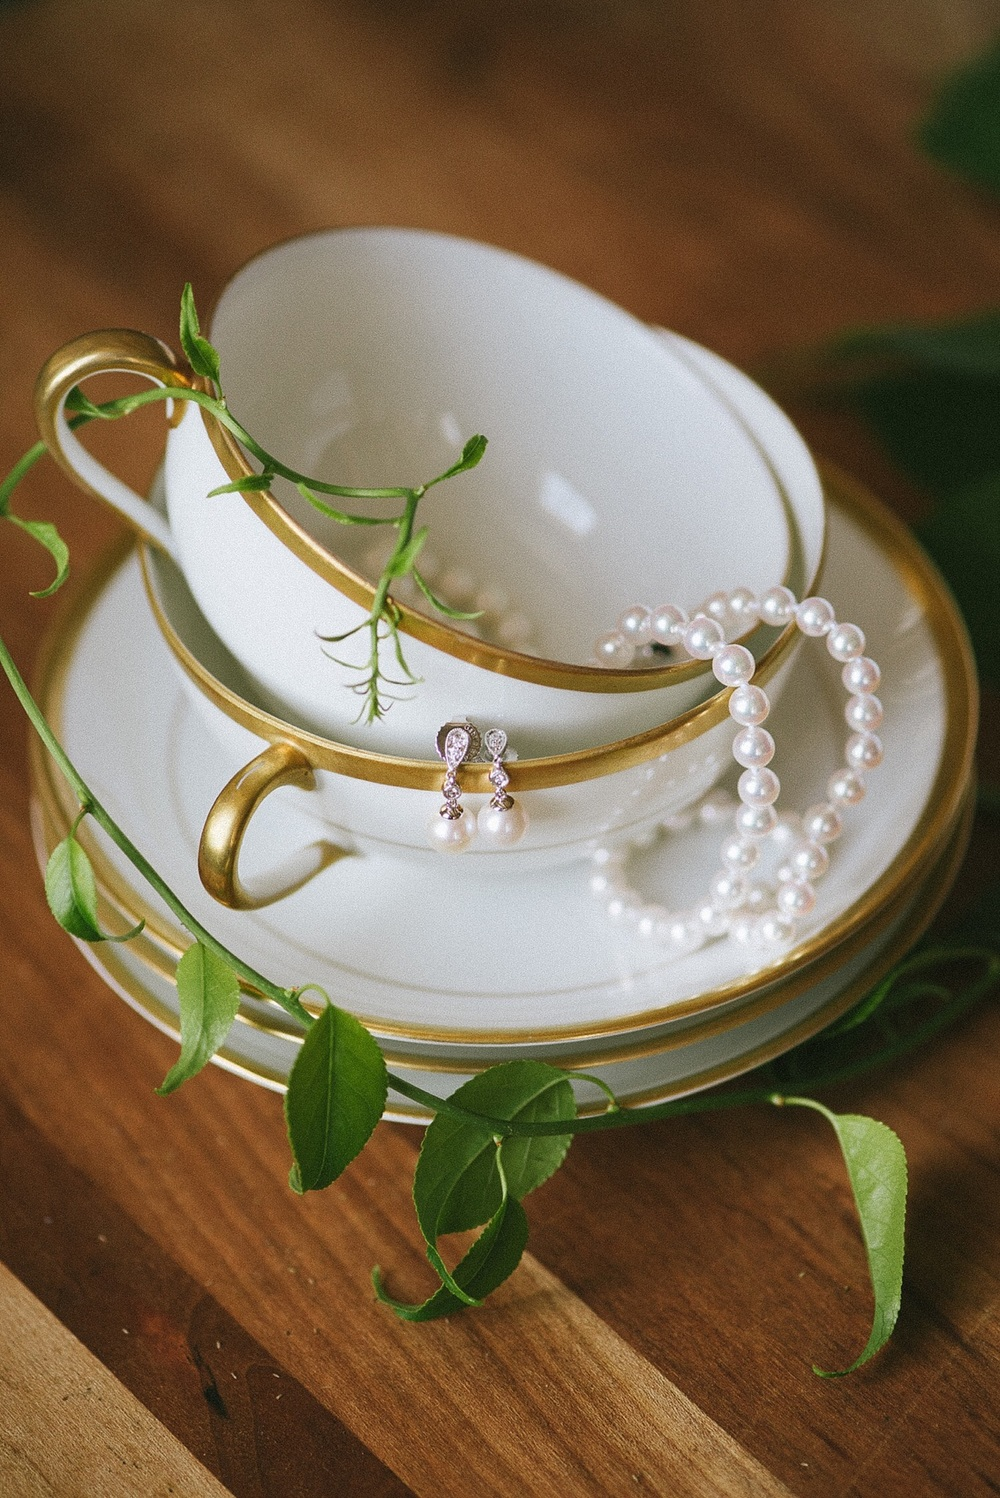 Bridal Jewelry by Mon Amie Jewelry in a Tea Cup